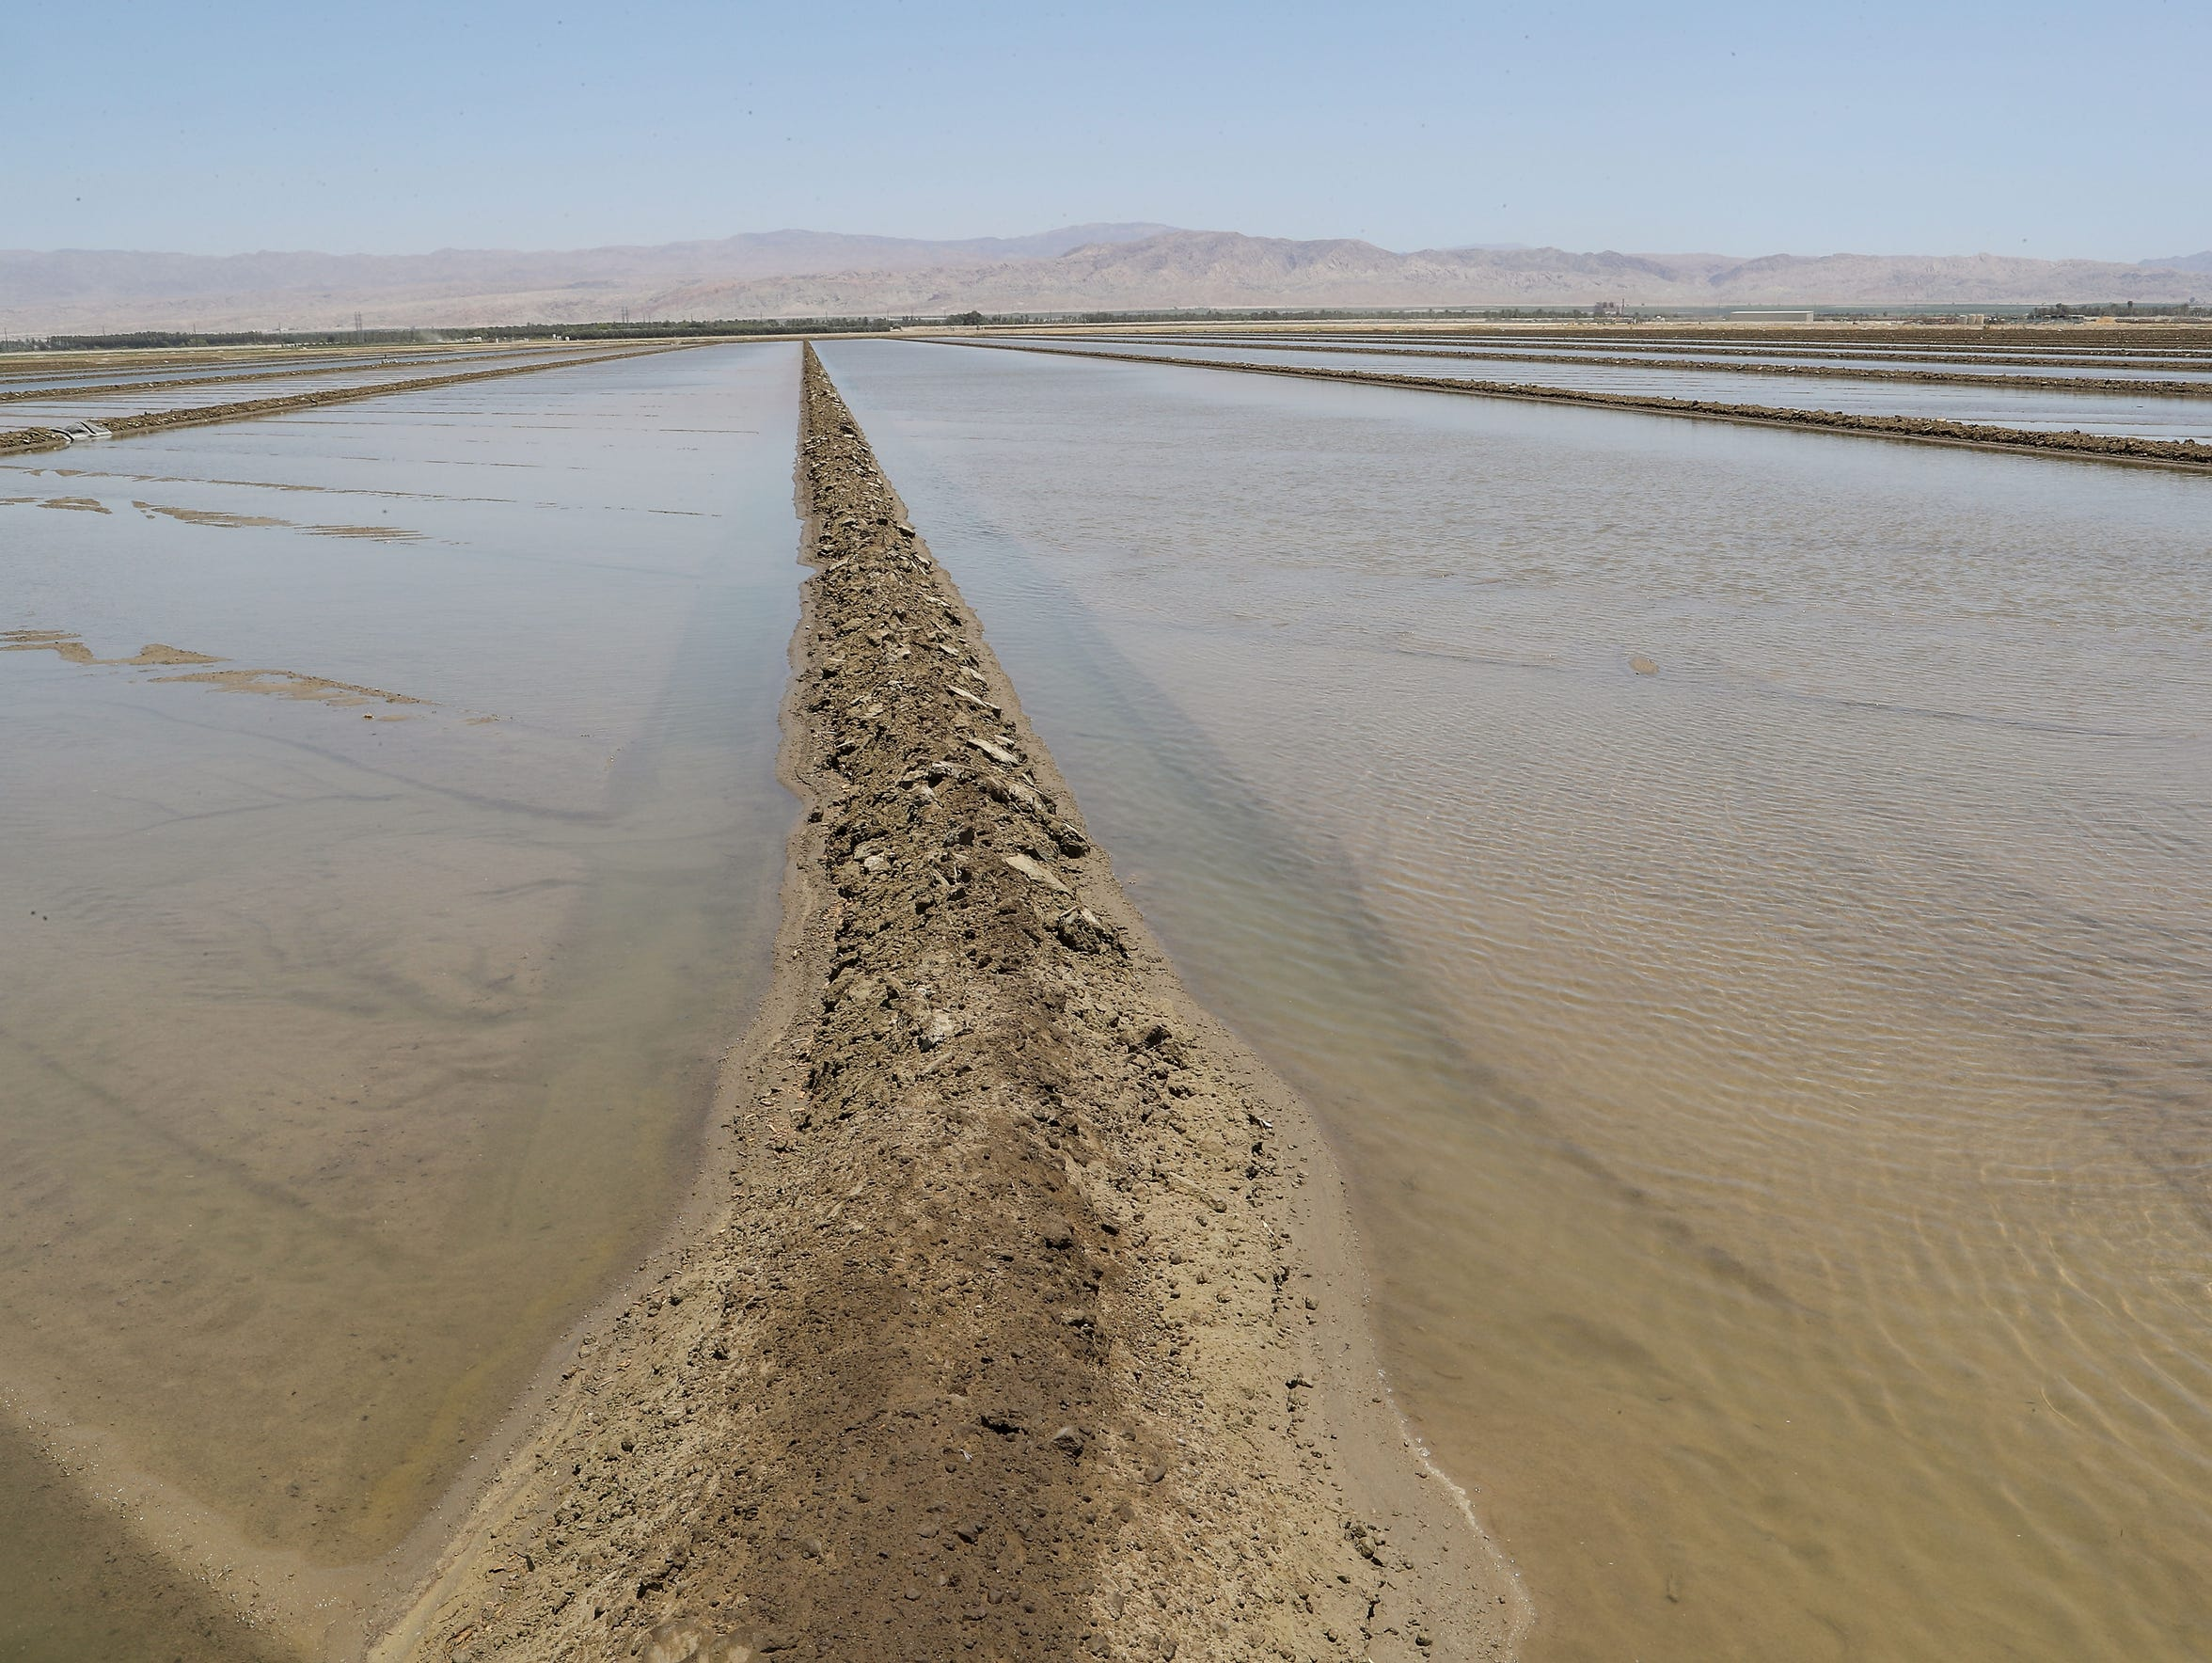 Agriculture accounts for roughly half of all water use in the Coachella Valley.